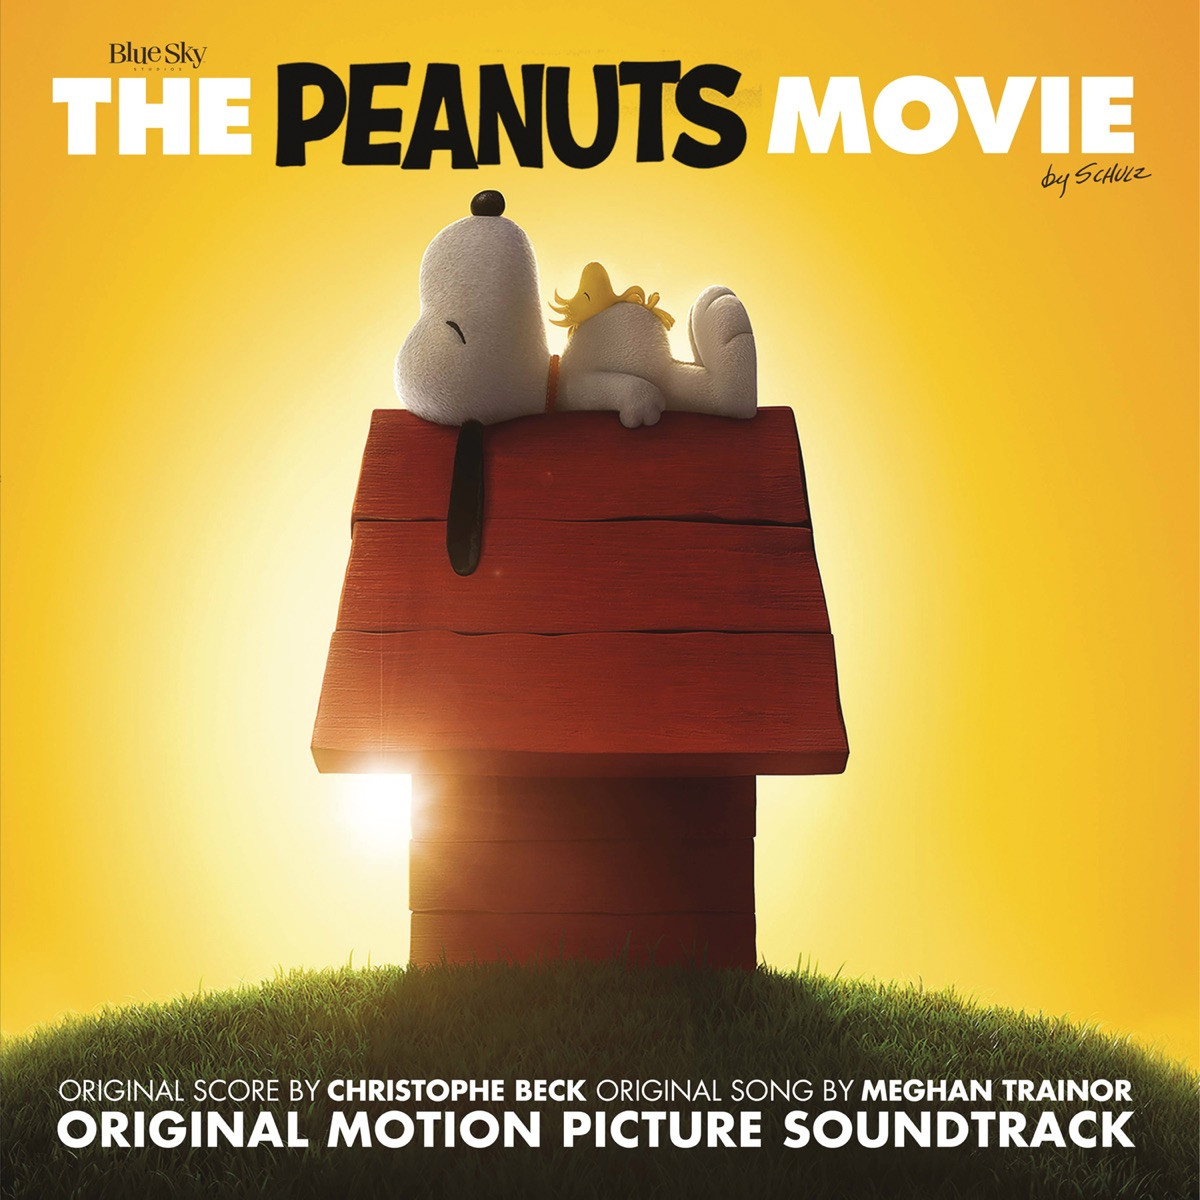 The Peanuts Movie Original Motion Picture Soundtrack Various Artists CD cover